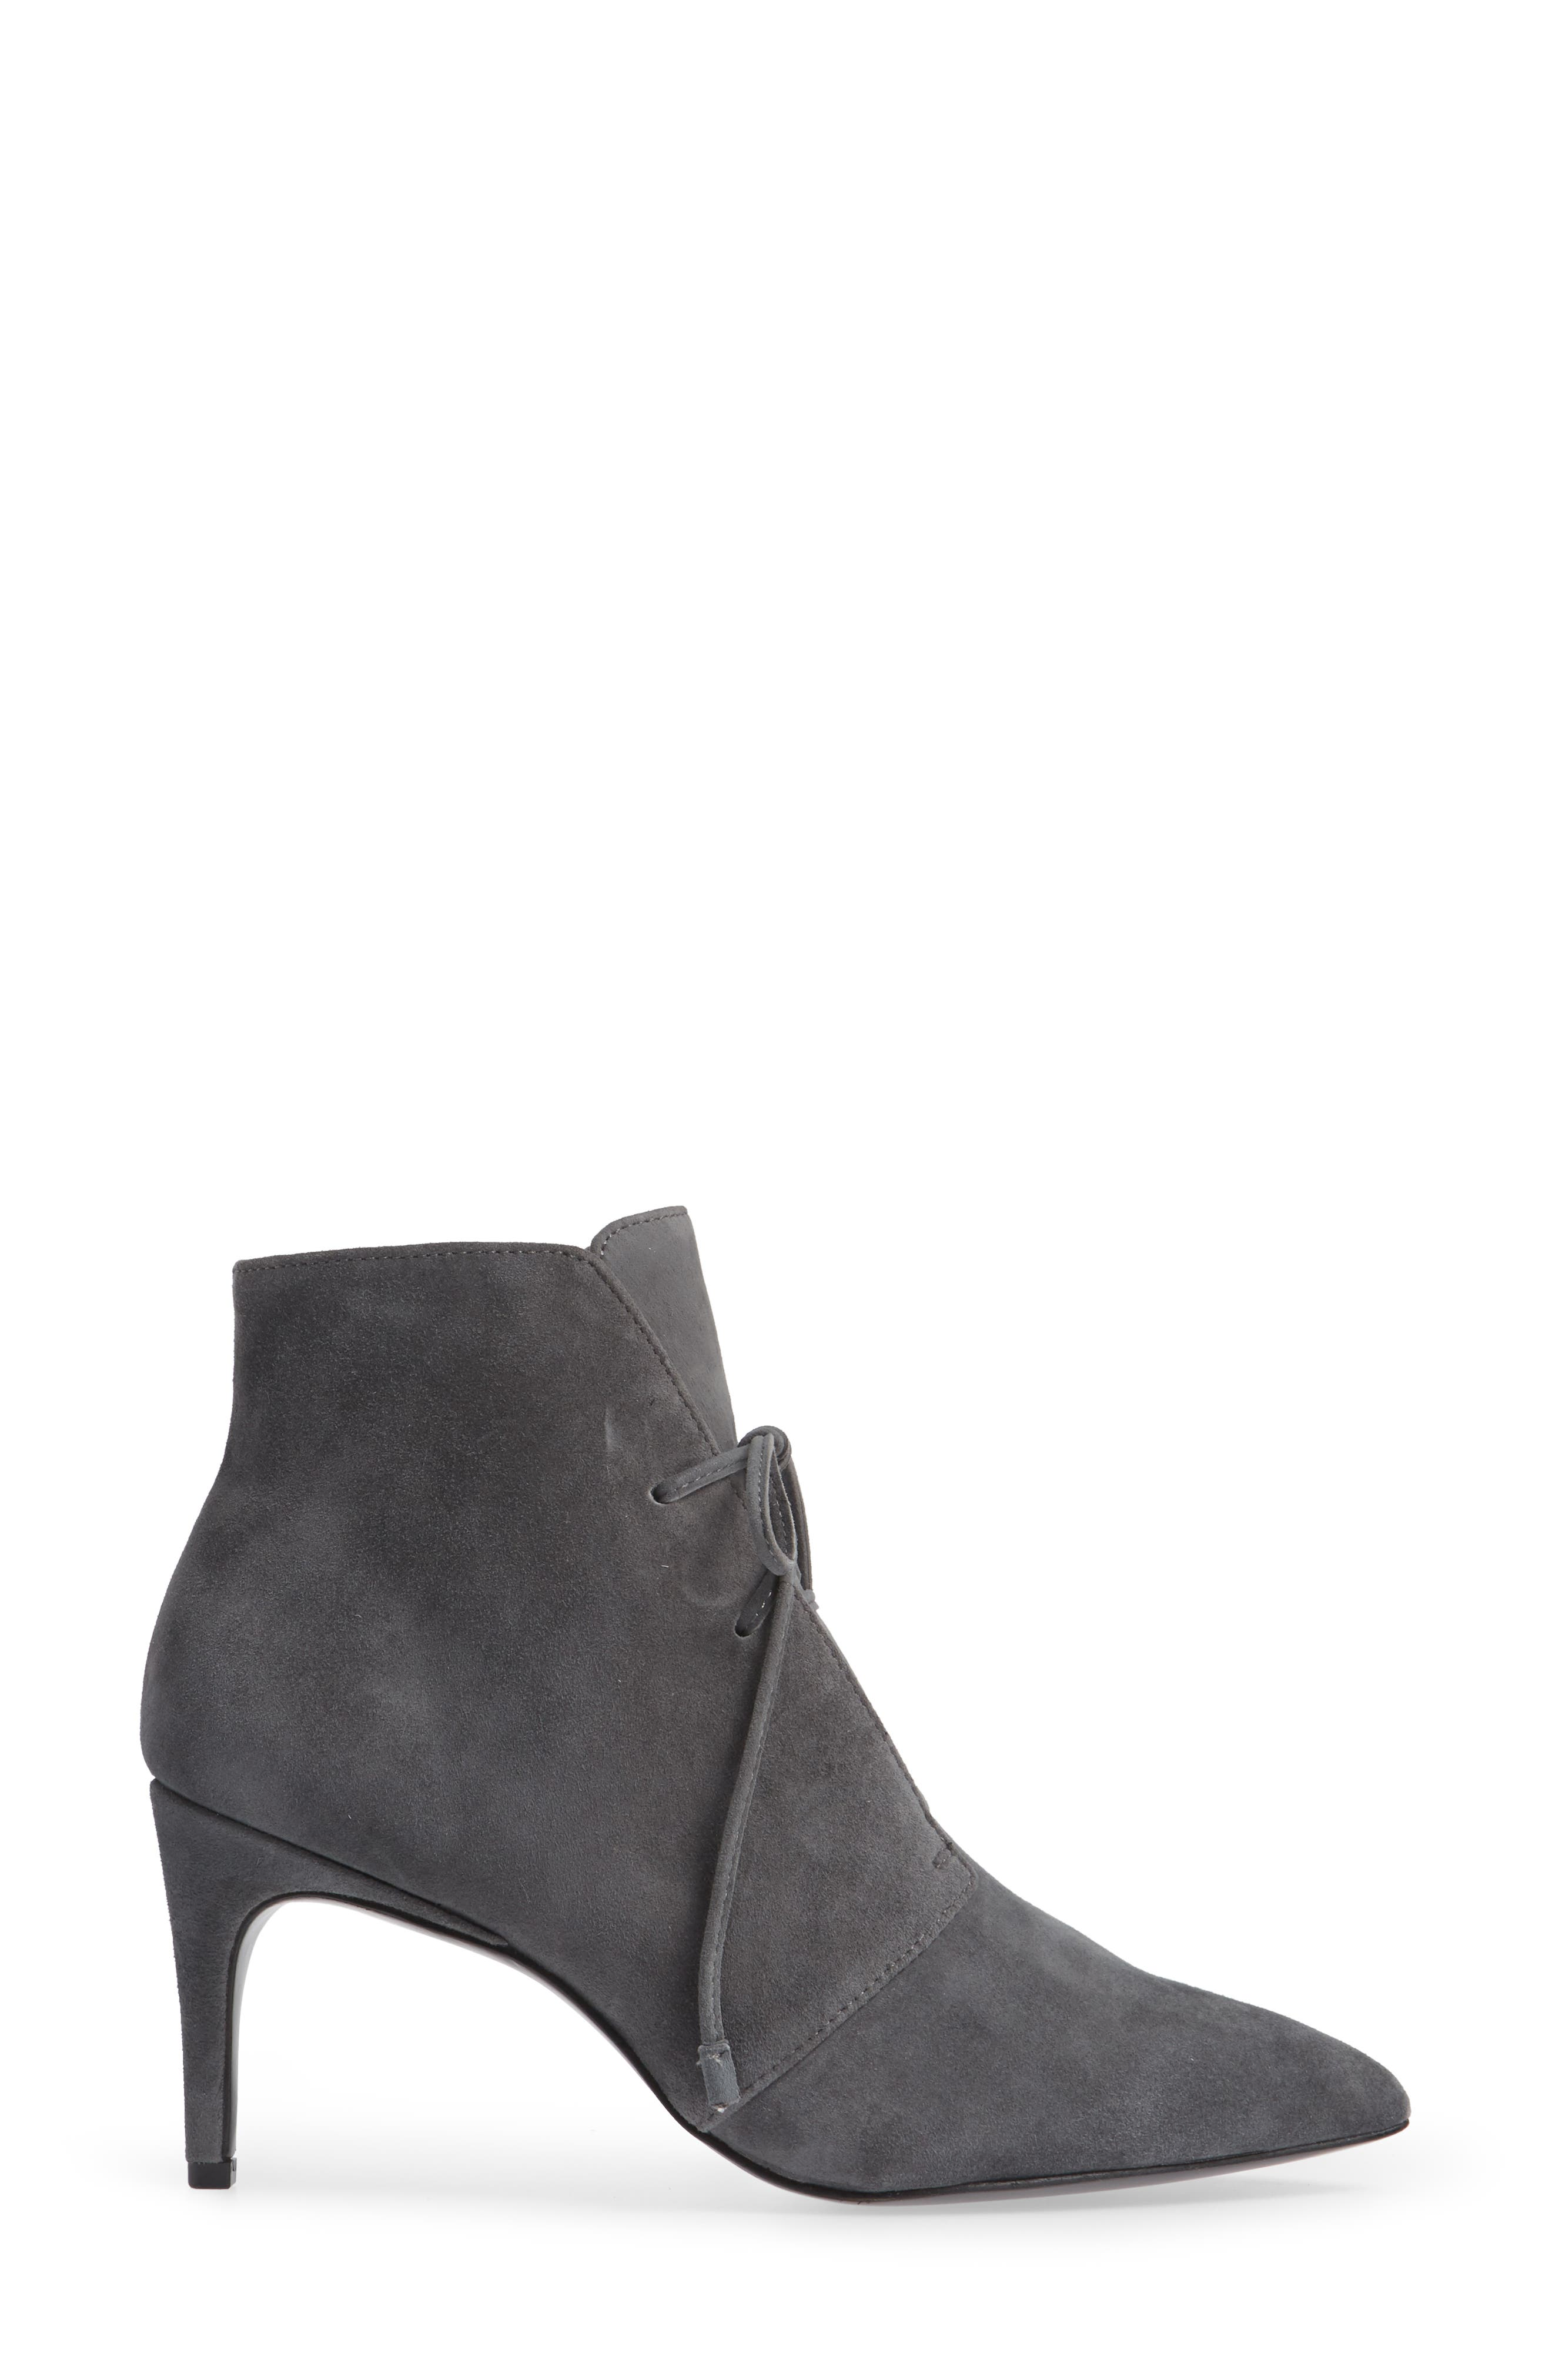 Portis Bootie,                             Alternate thumbnail 3, color,                             CHARCOAL SUEDE